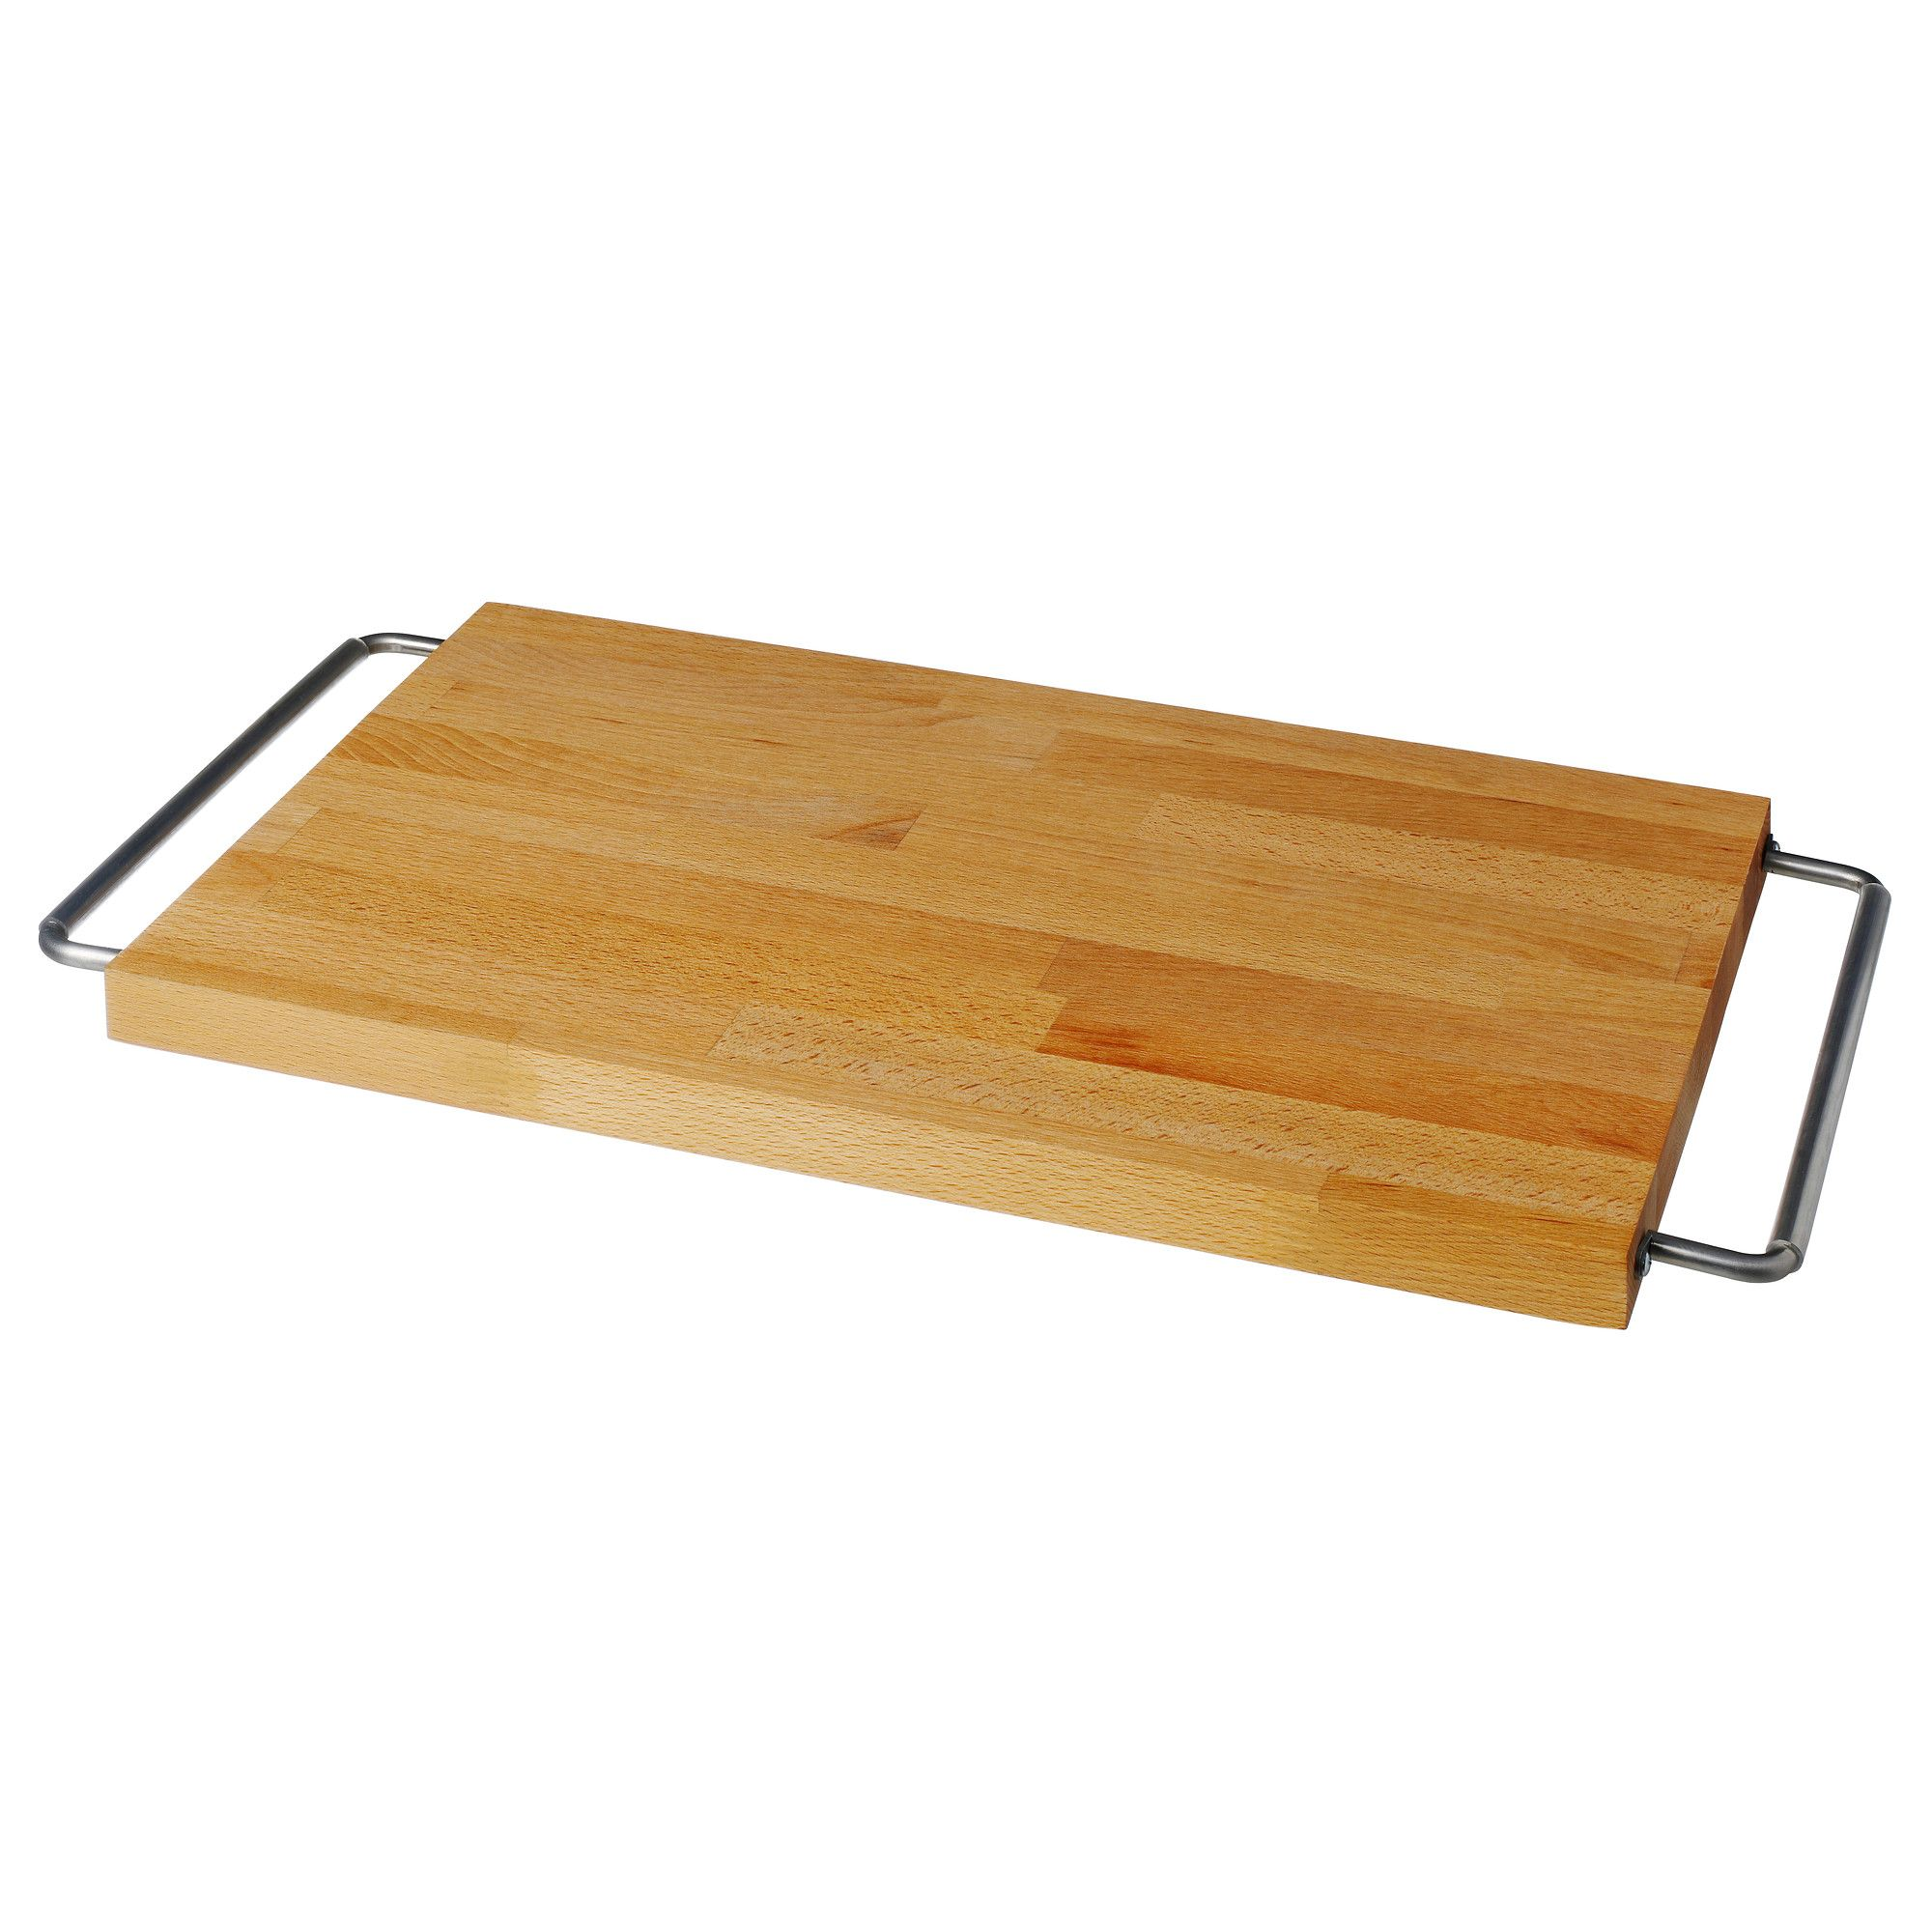 IKEA   DOMSJÖ, Chopping Board, Fits In The Bowl Of DOMSJÖ Sink, So